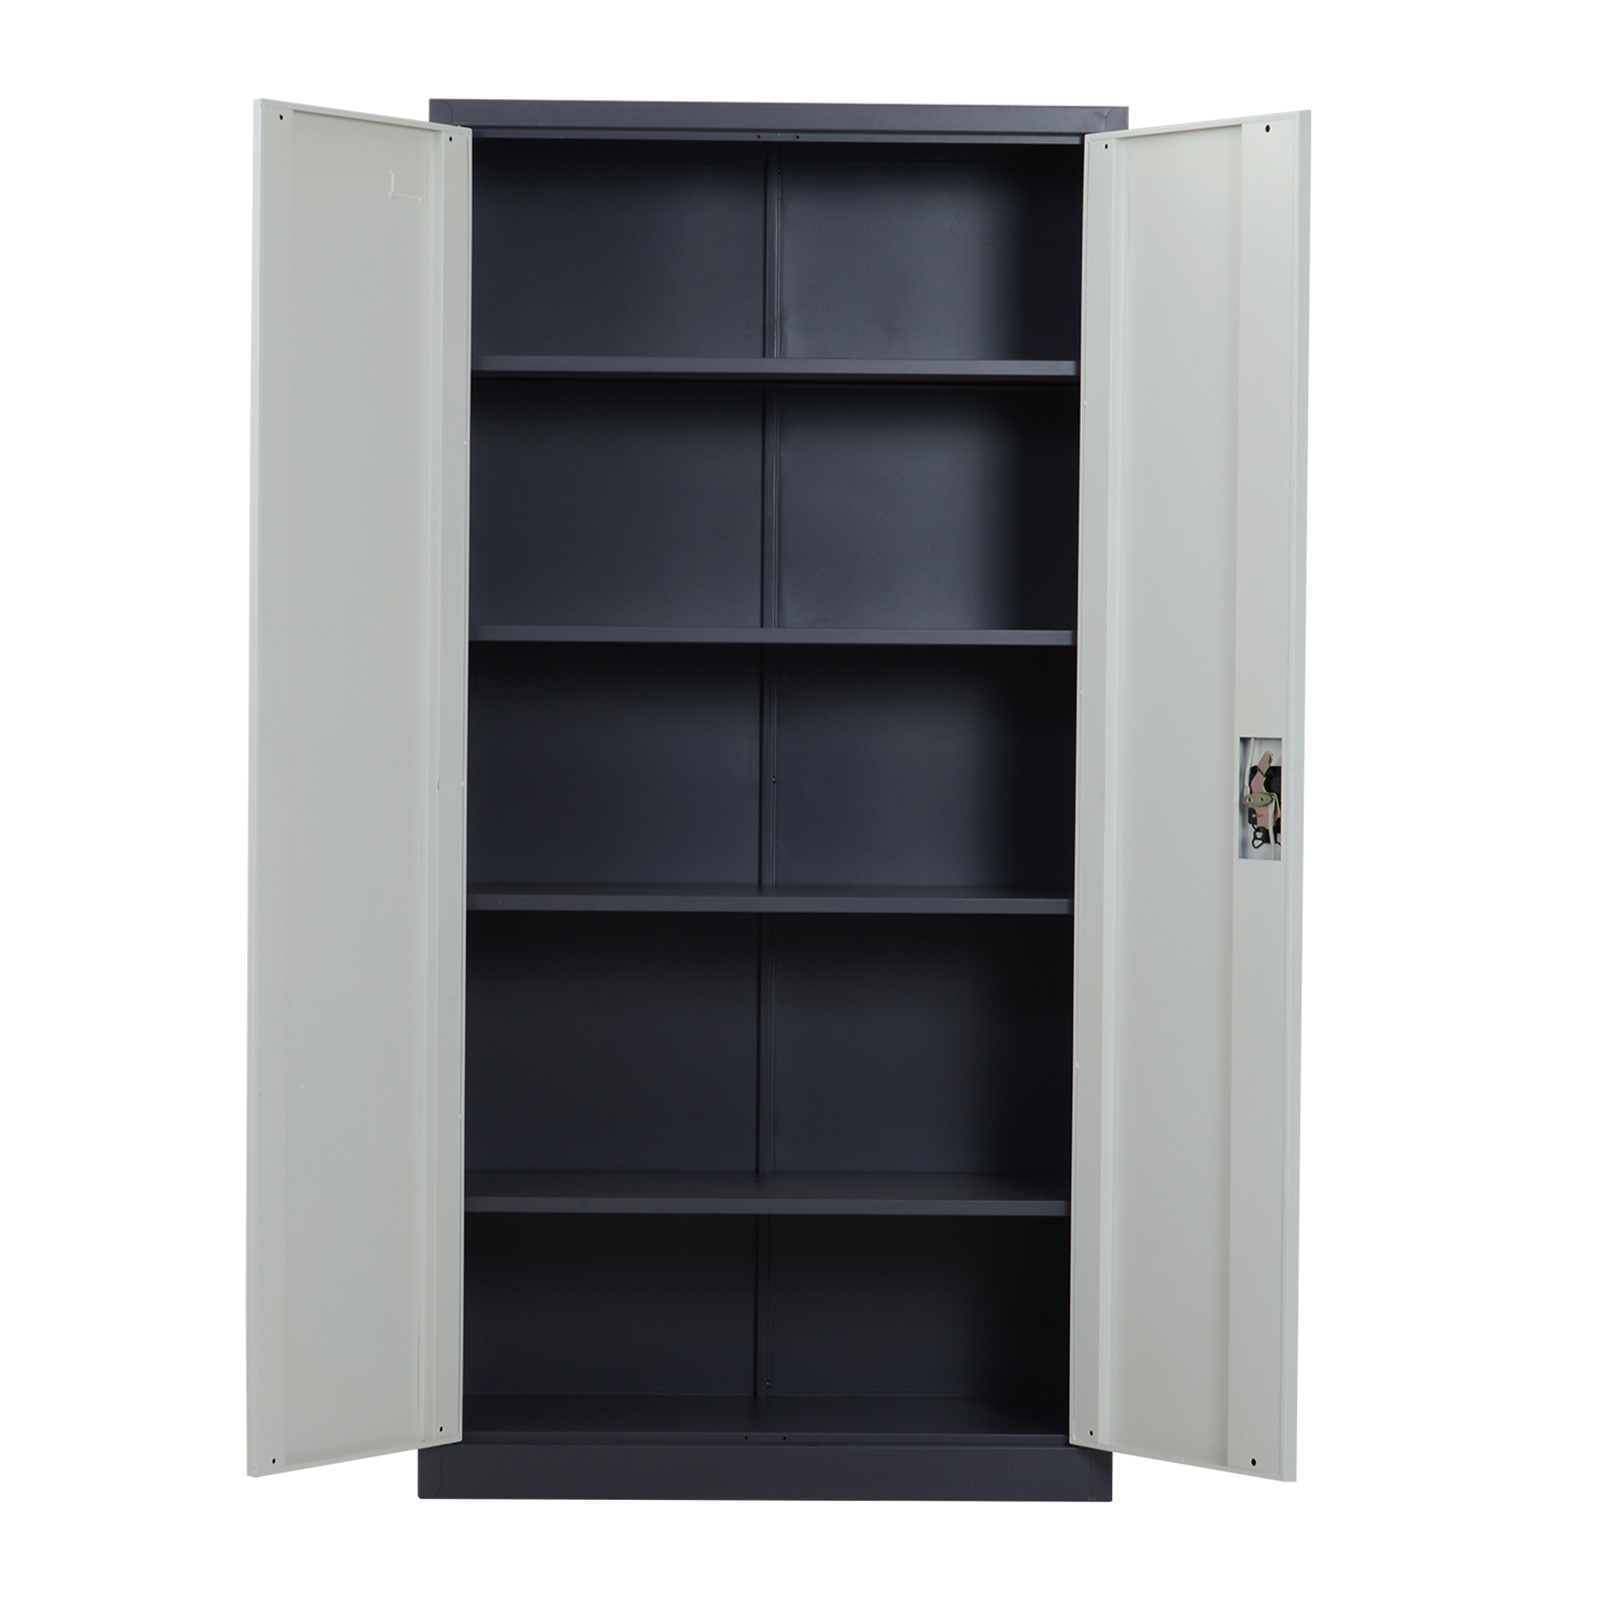 HOMCOM Cabinet Office Warehouse Workshop With Lock 2 Keys 5 Adjustable Shelves Metal 90 × 40 × 180 White Cm